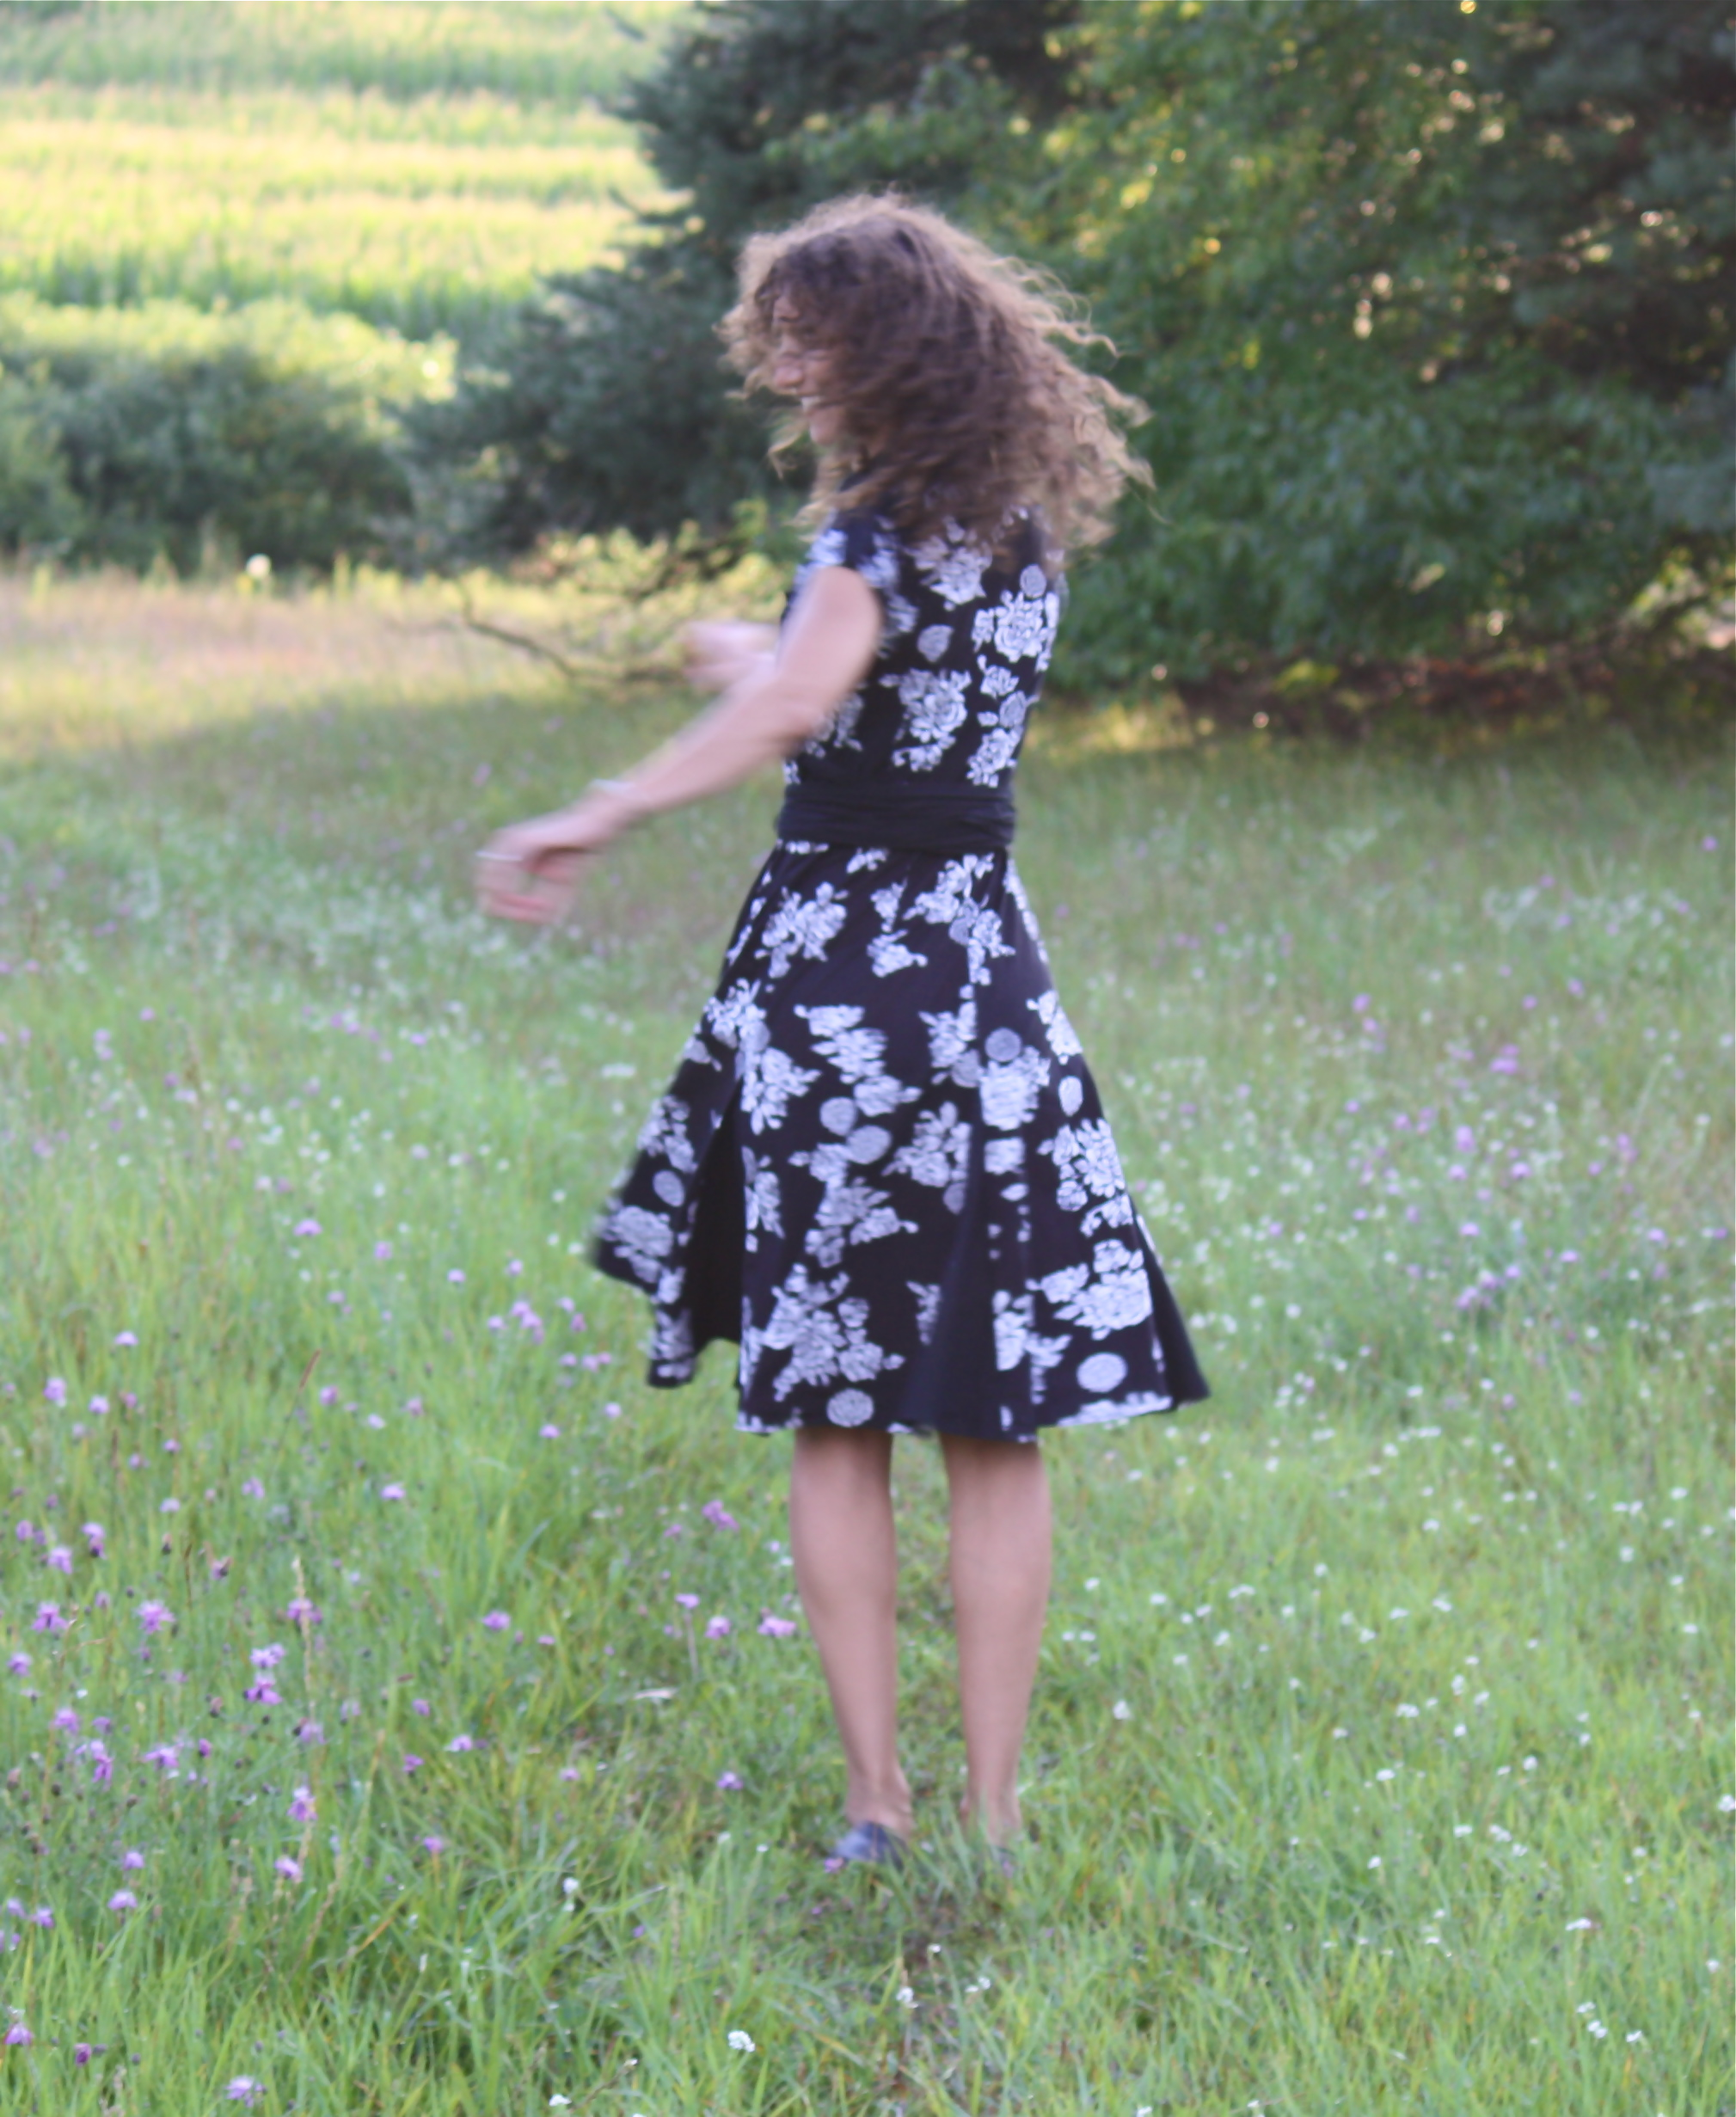 No, I do not think I am too old to twirl in a field of wildflowers.